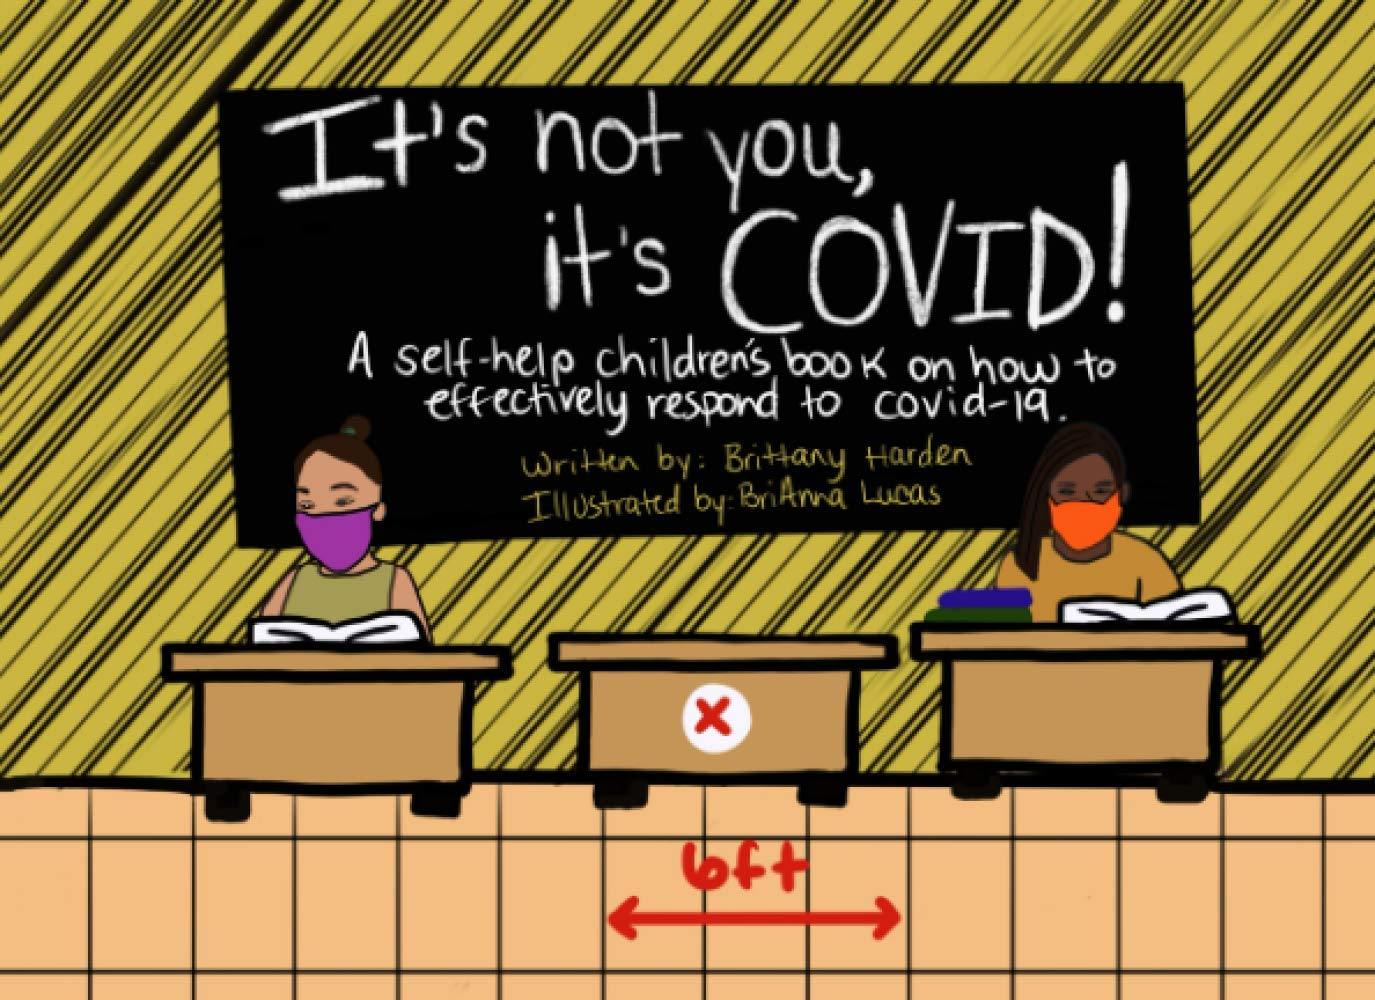 It's not you, it's COVID!: A self-help children's book on how to effectively respond to Covid-19.